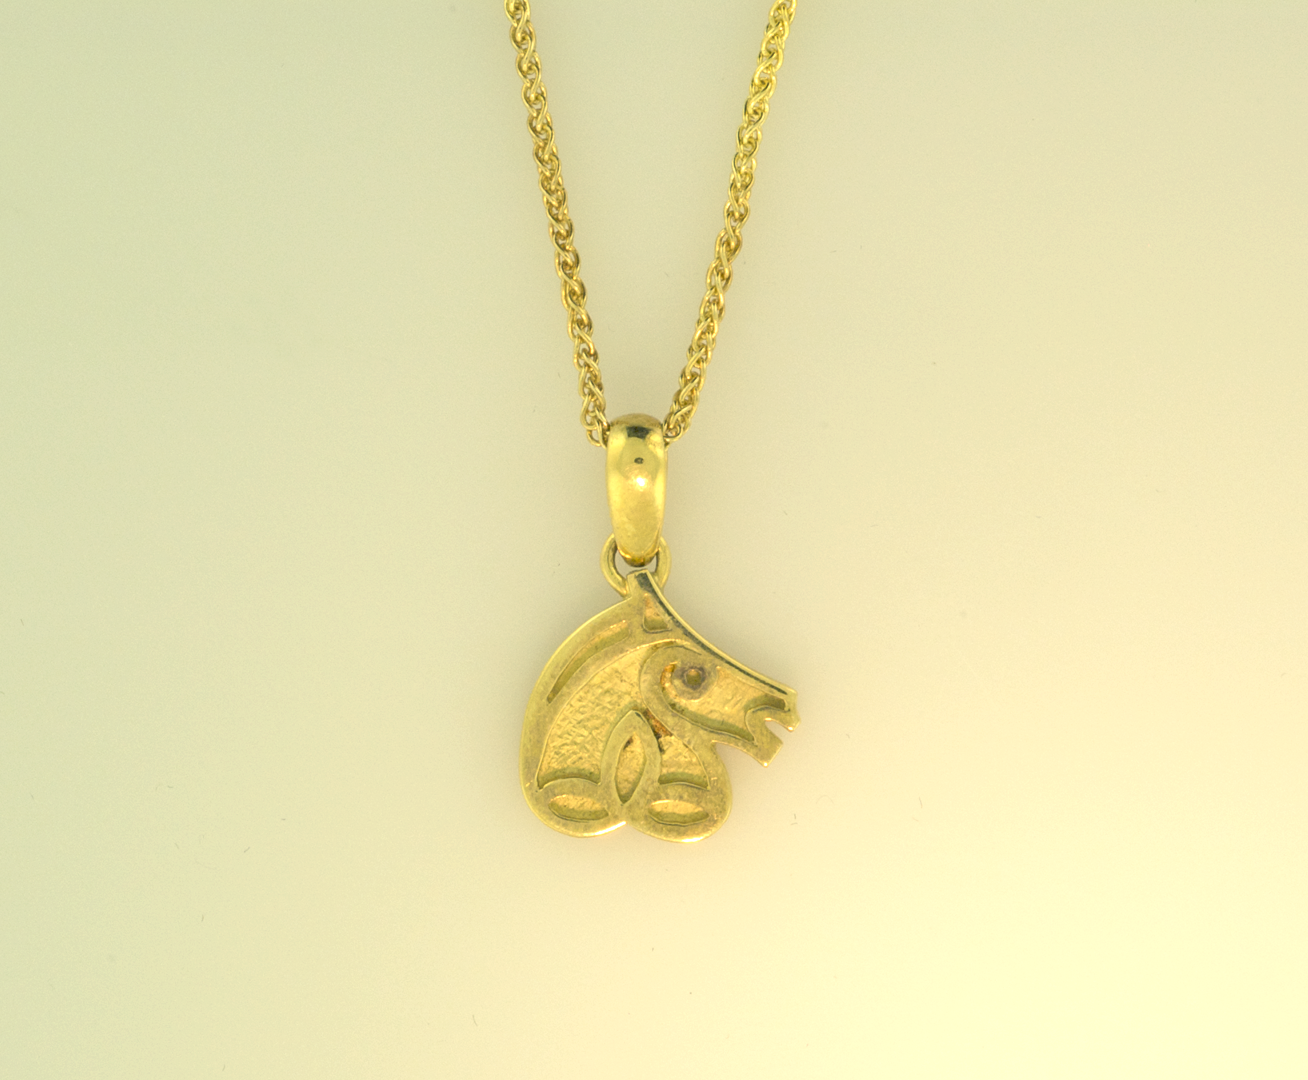 Celtic horse head pendant equestrian signature collections 18kt yellow gold celtic horse head pendant on 18kt yellow chain aloadofball Image collections